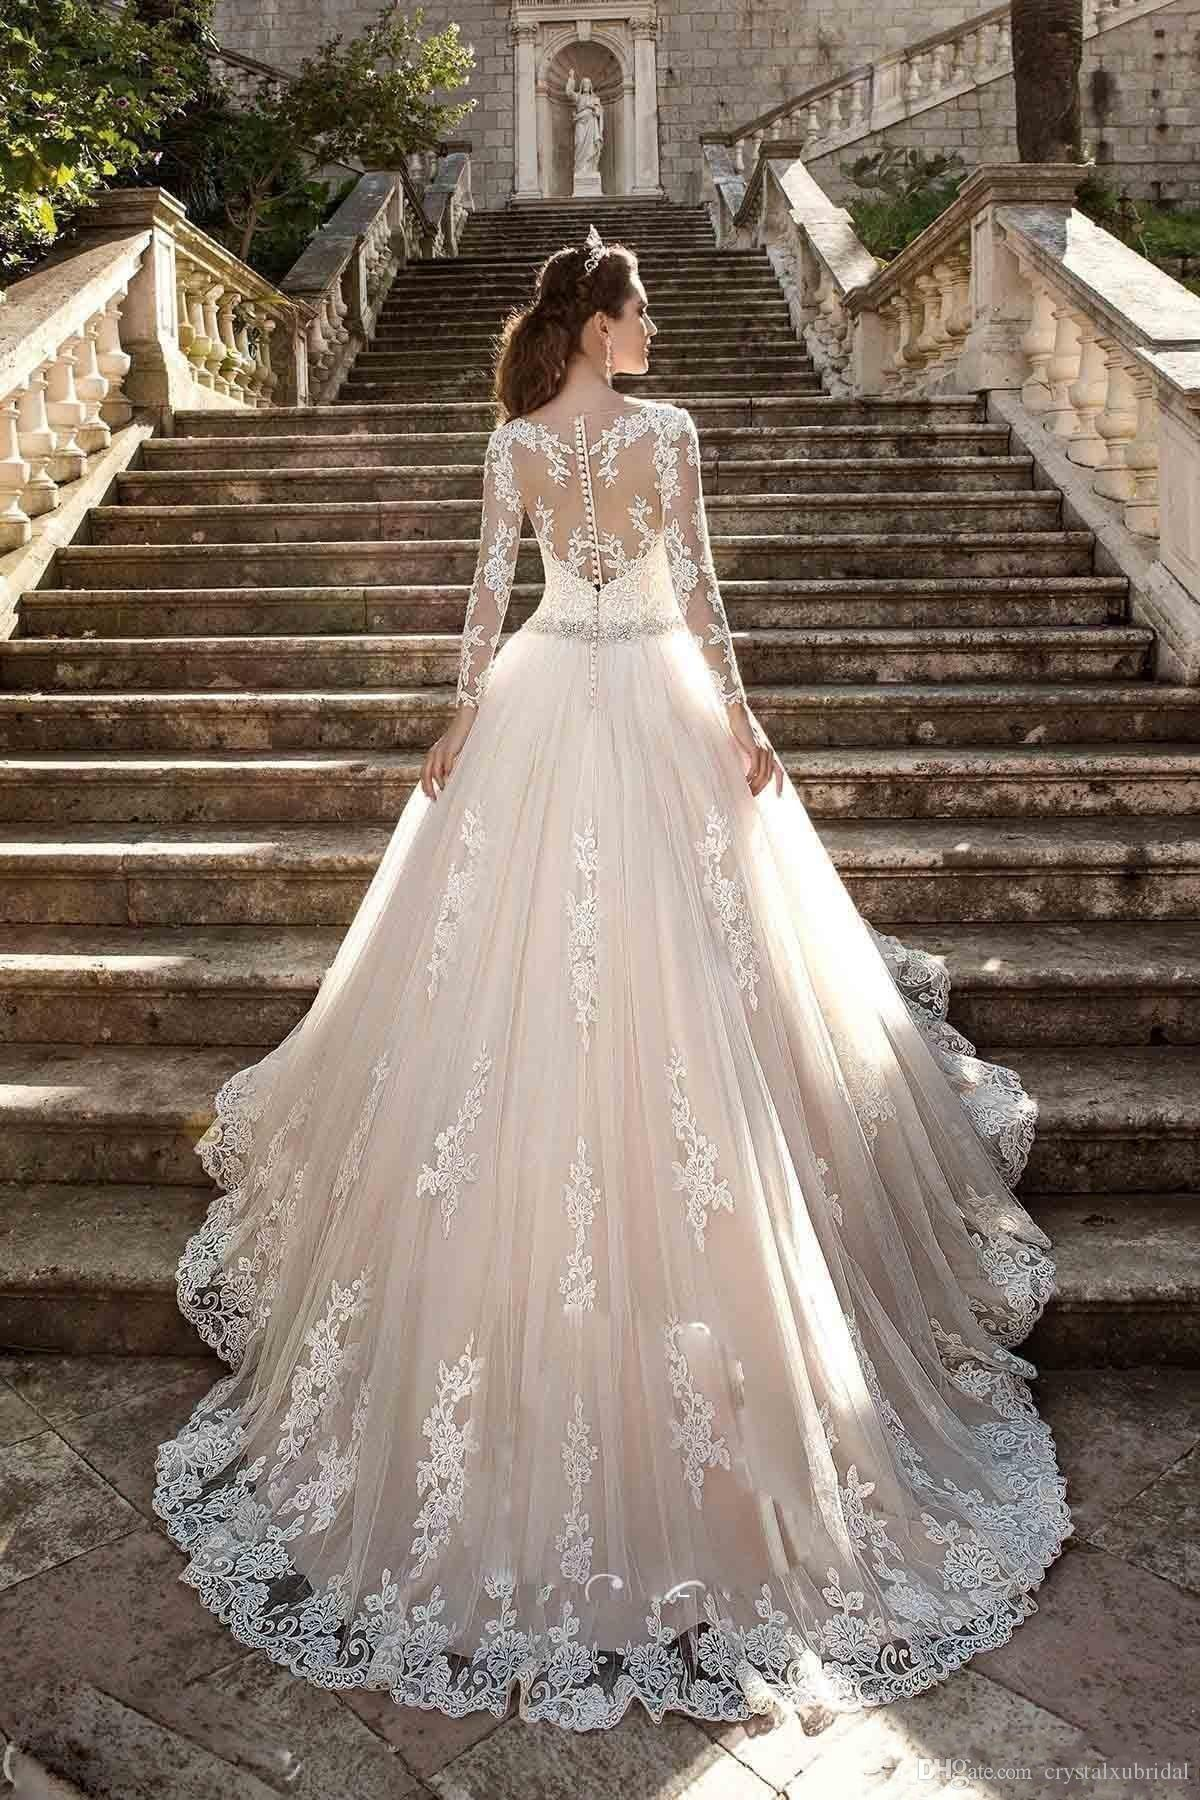 Milla Nova 2018 Wedding Dresses Jewel Neck Long Sleeves Lace Appliques Beaded A Line Court Train Blush Pink Tulle Plus Size Bridal Gowns